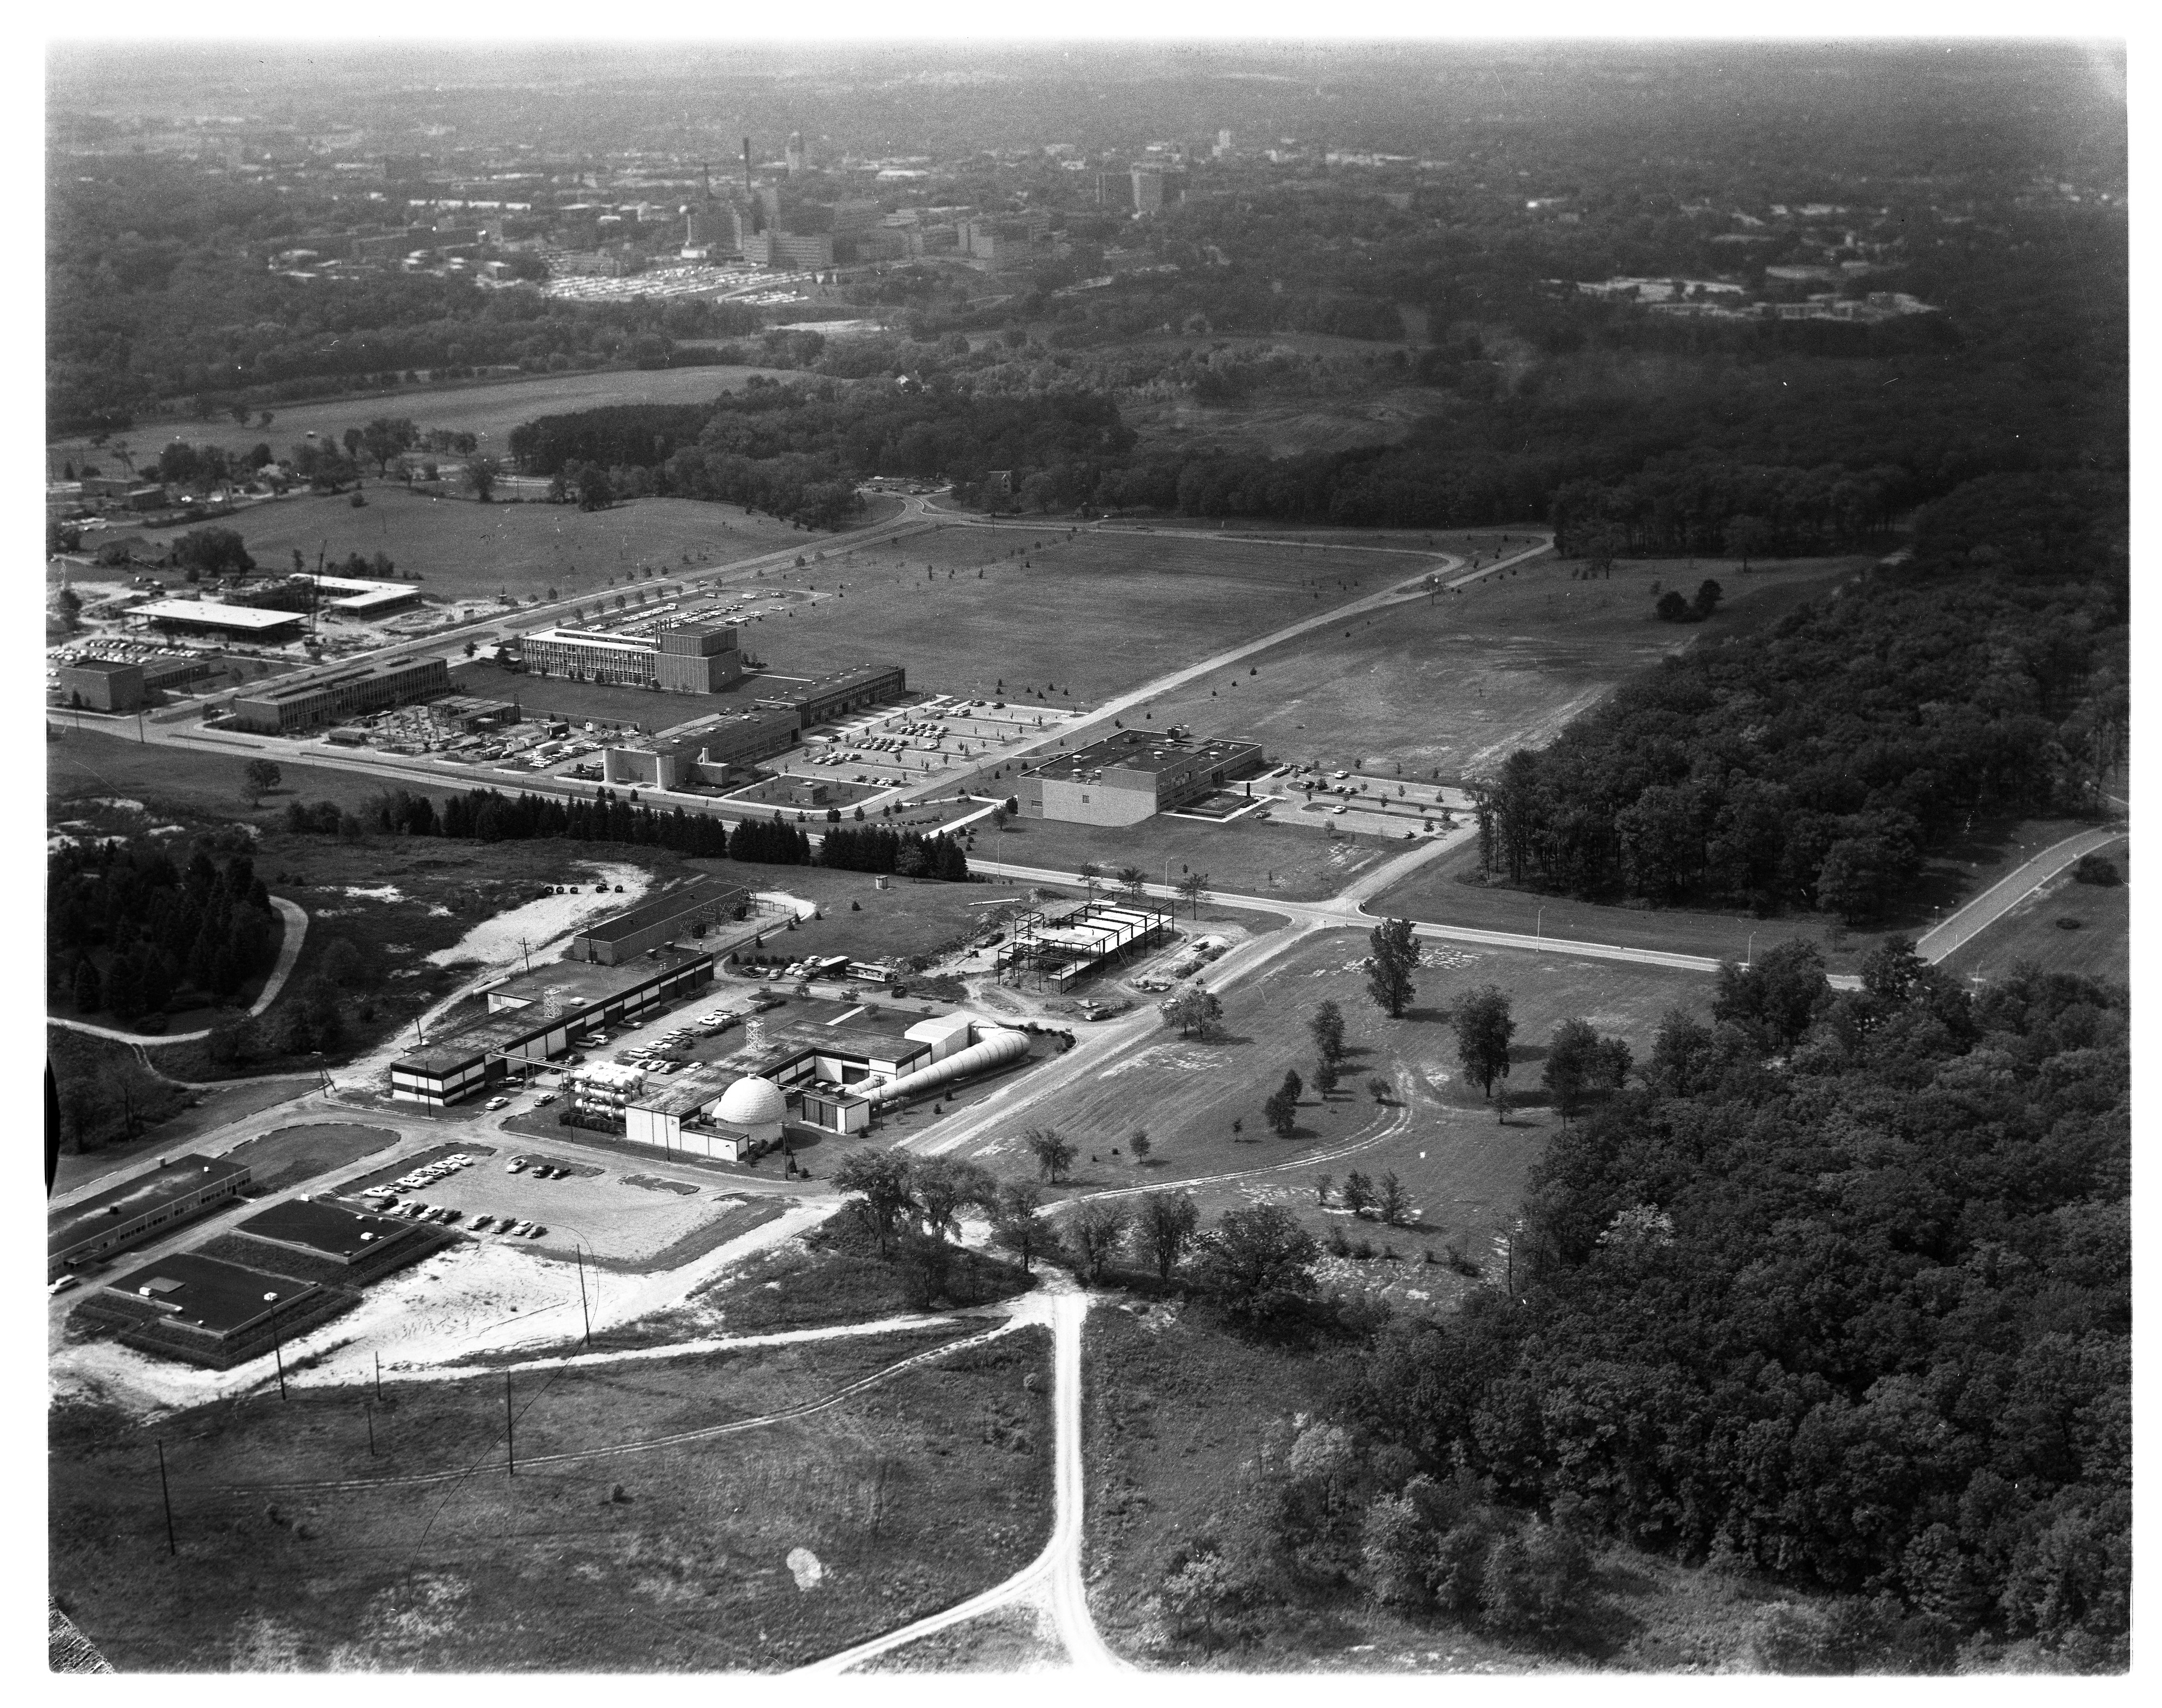 Aerial View of the University of Michigan's North Campus, September 1962 image